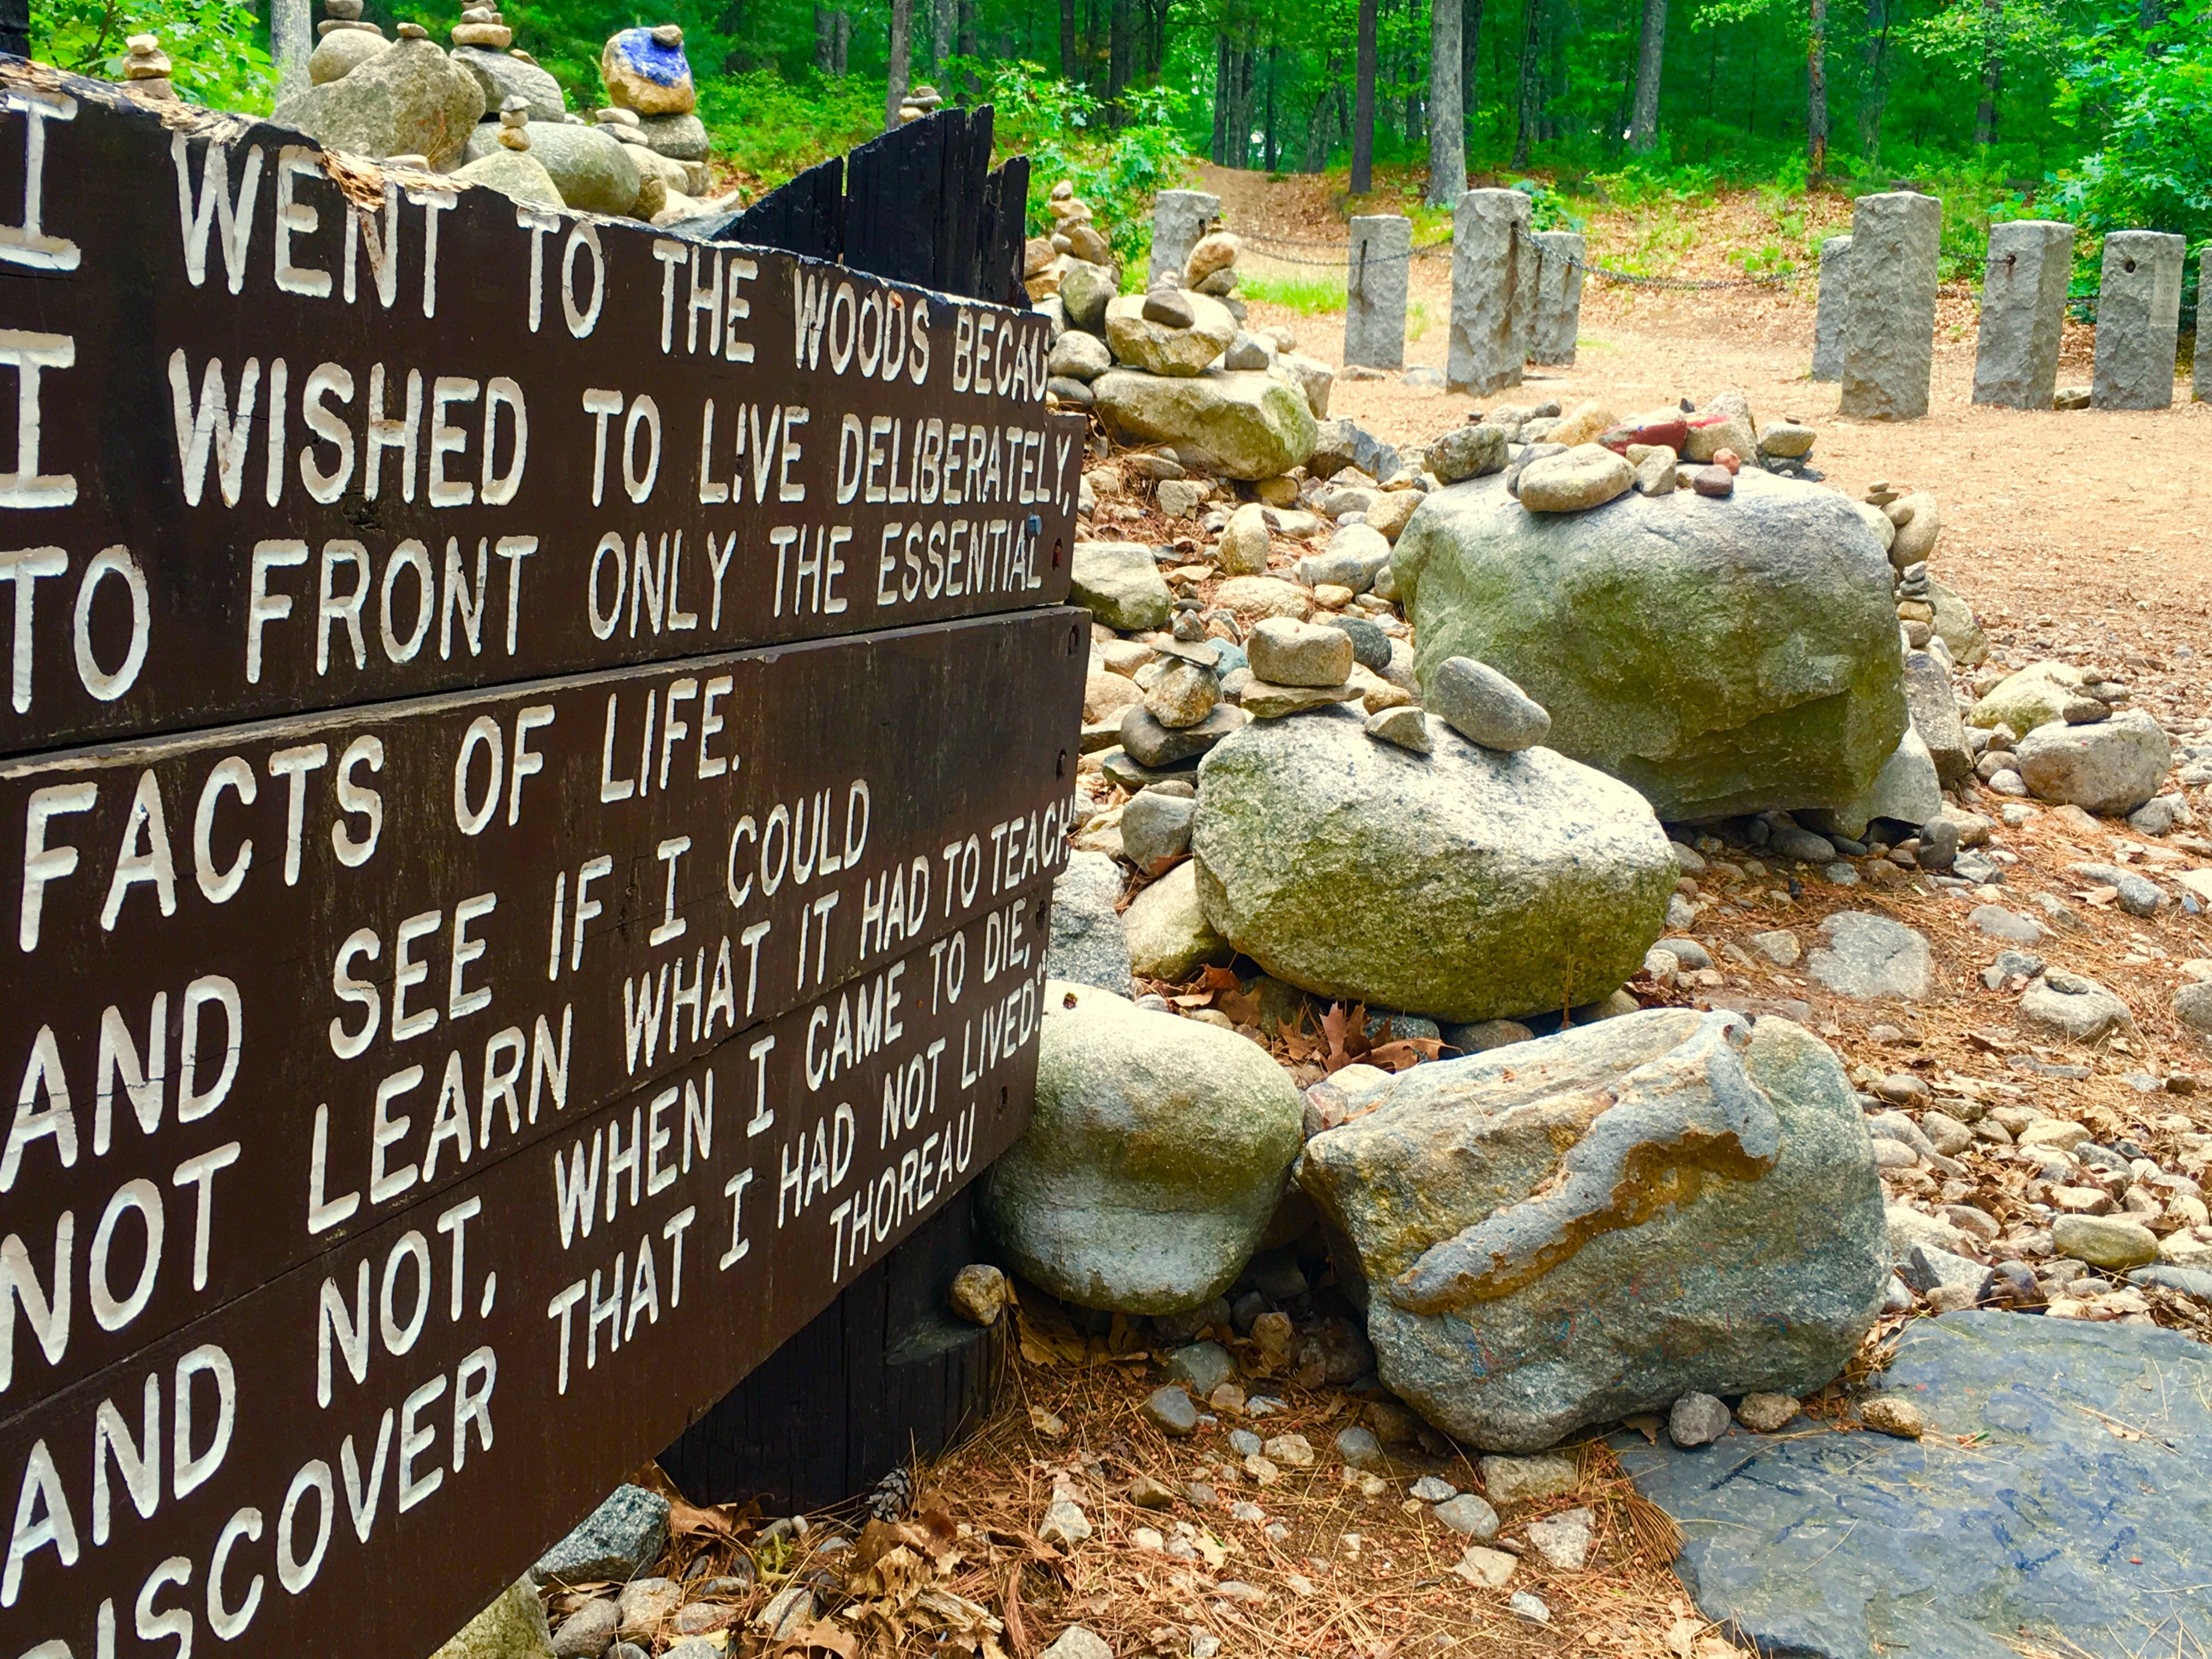 The site where Thoreau lived on Walden Pond